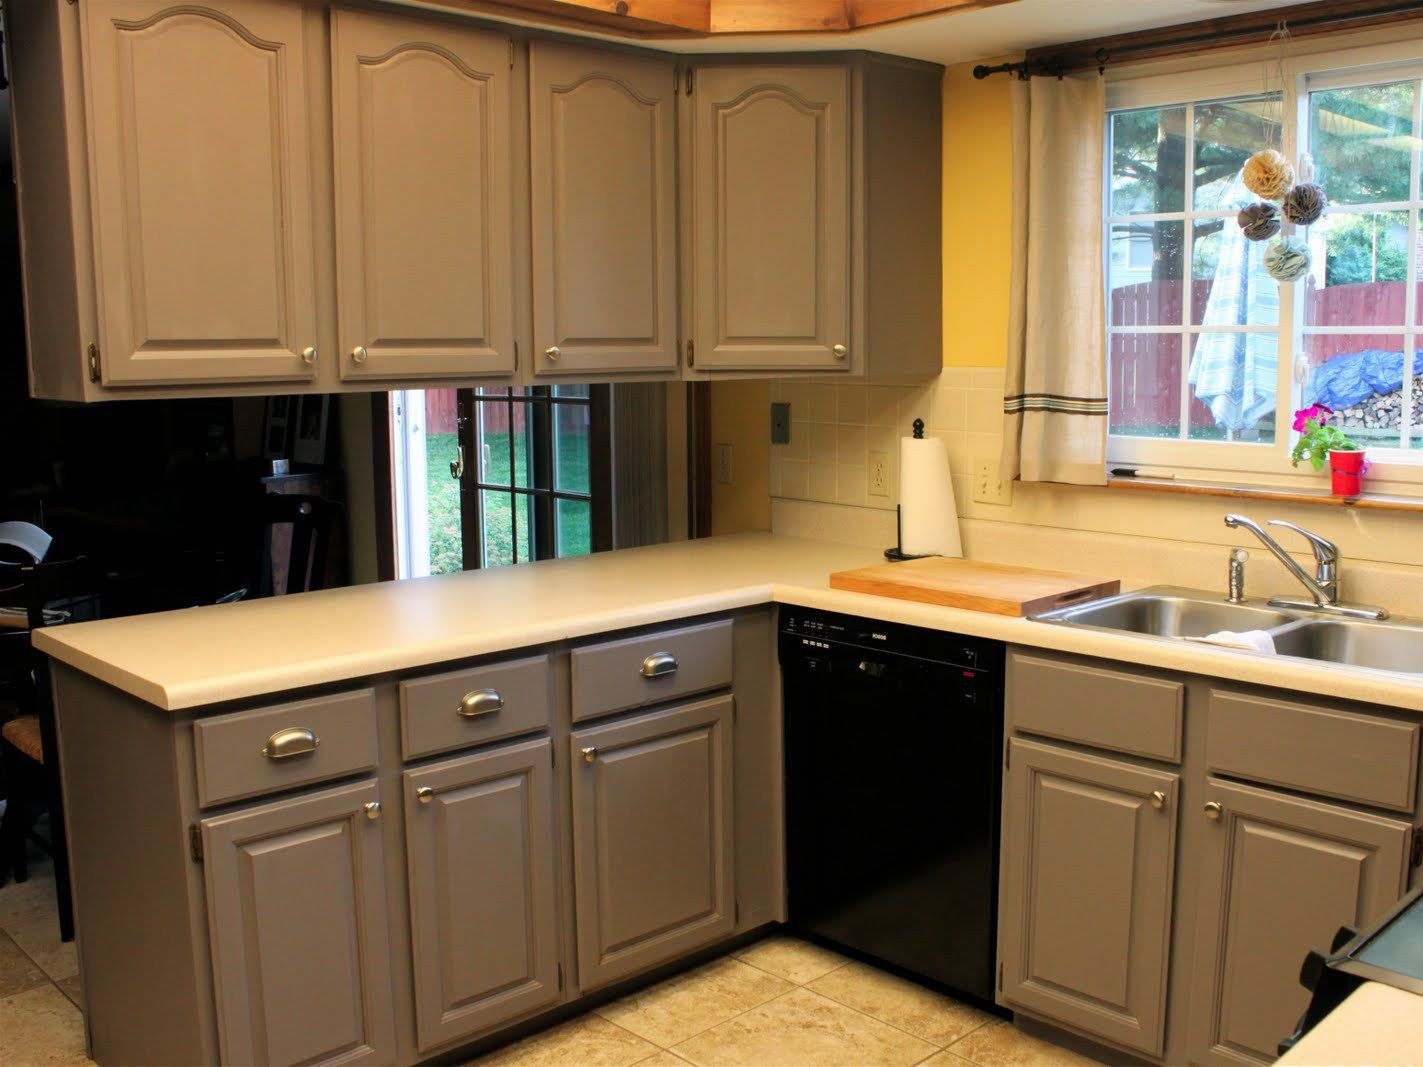 Best diy kitchen ideas and designs for 2019 and